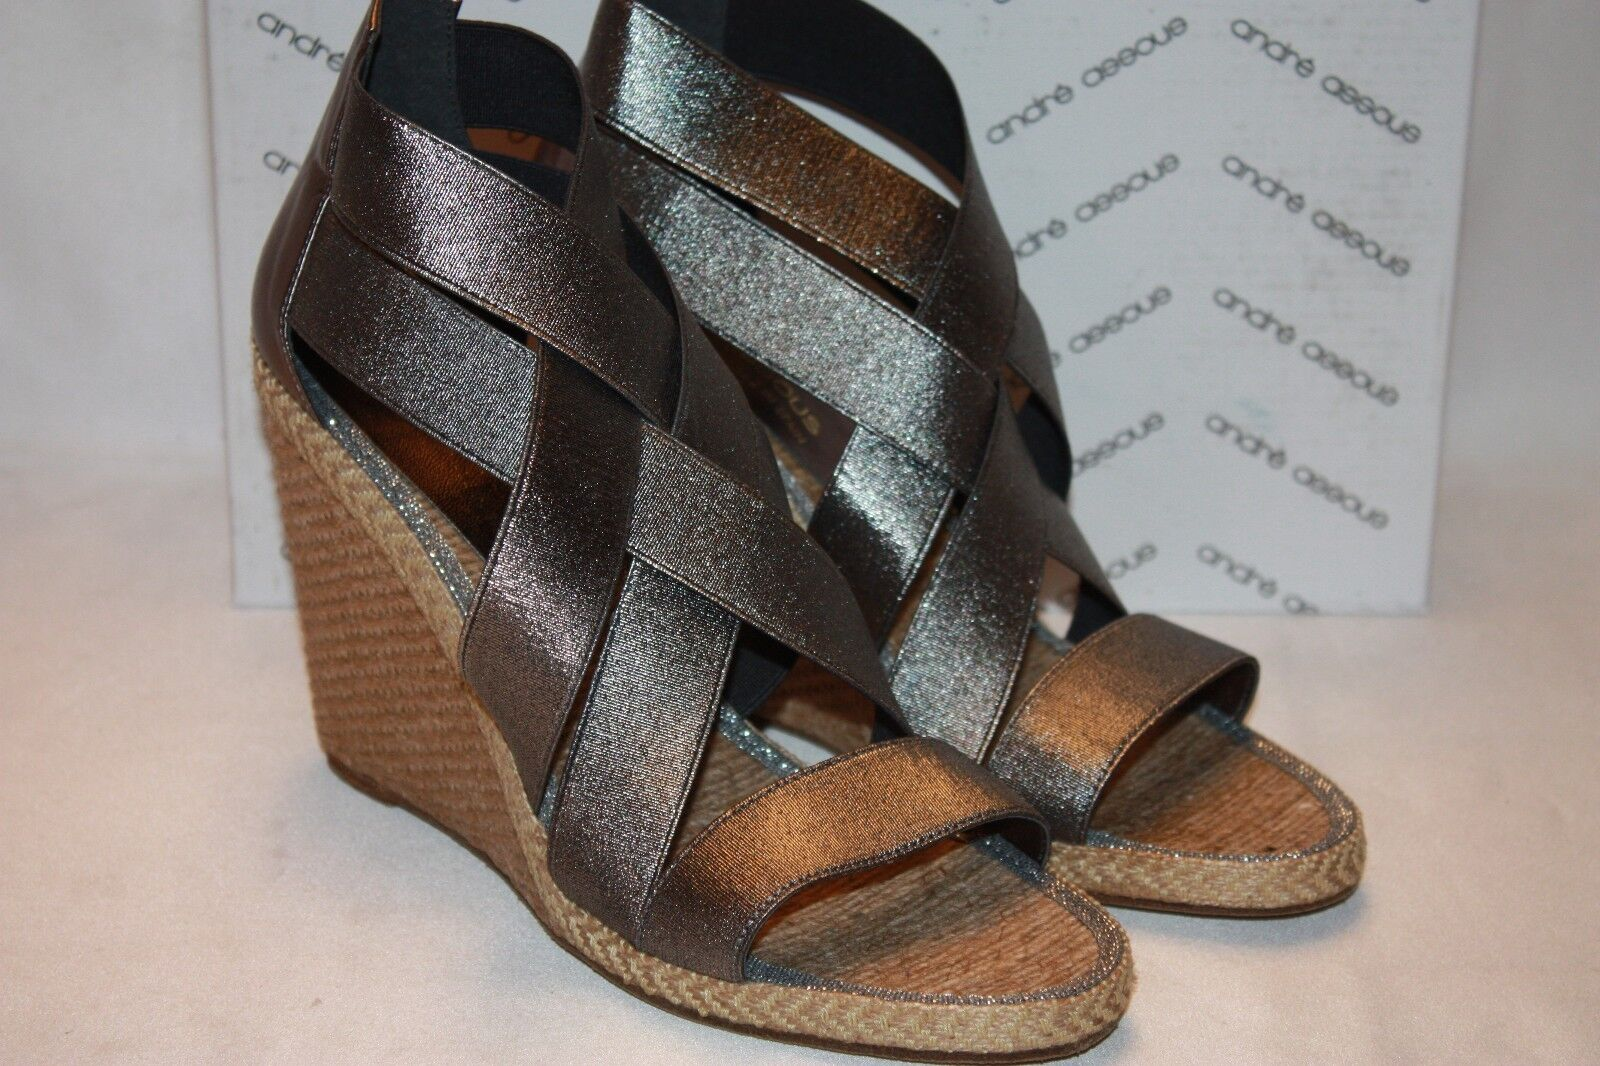 NEW  NIB ANDRE ASSOUS Pewter Elasticized Straps JAN Jute Wedge Sandals Sz 9  235